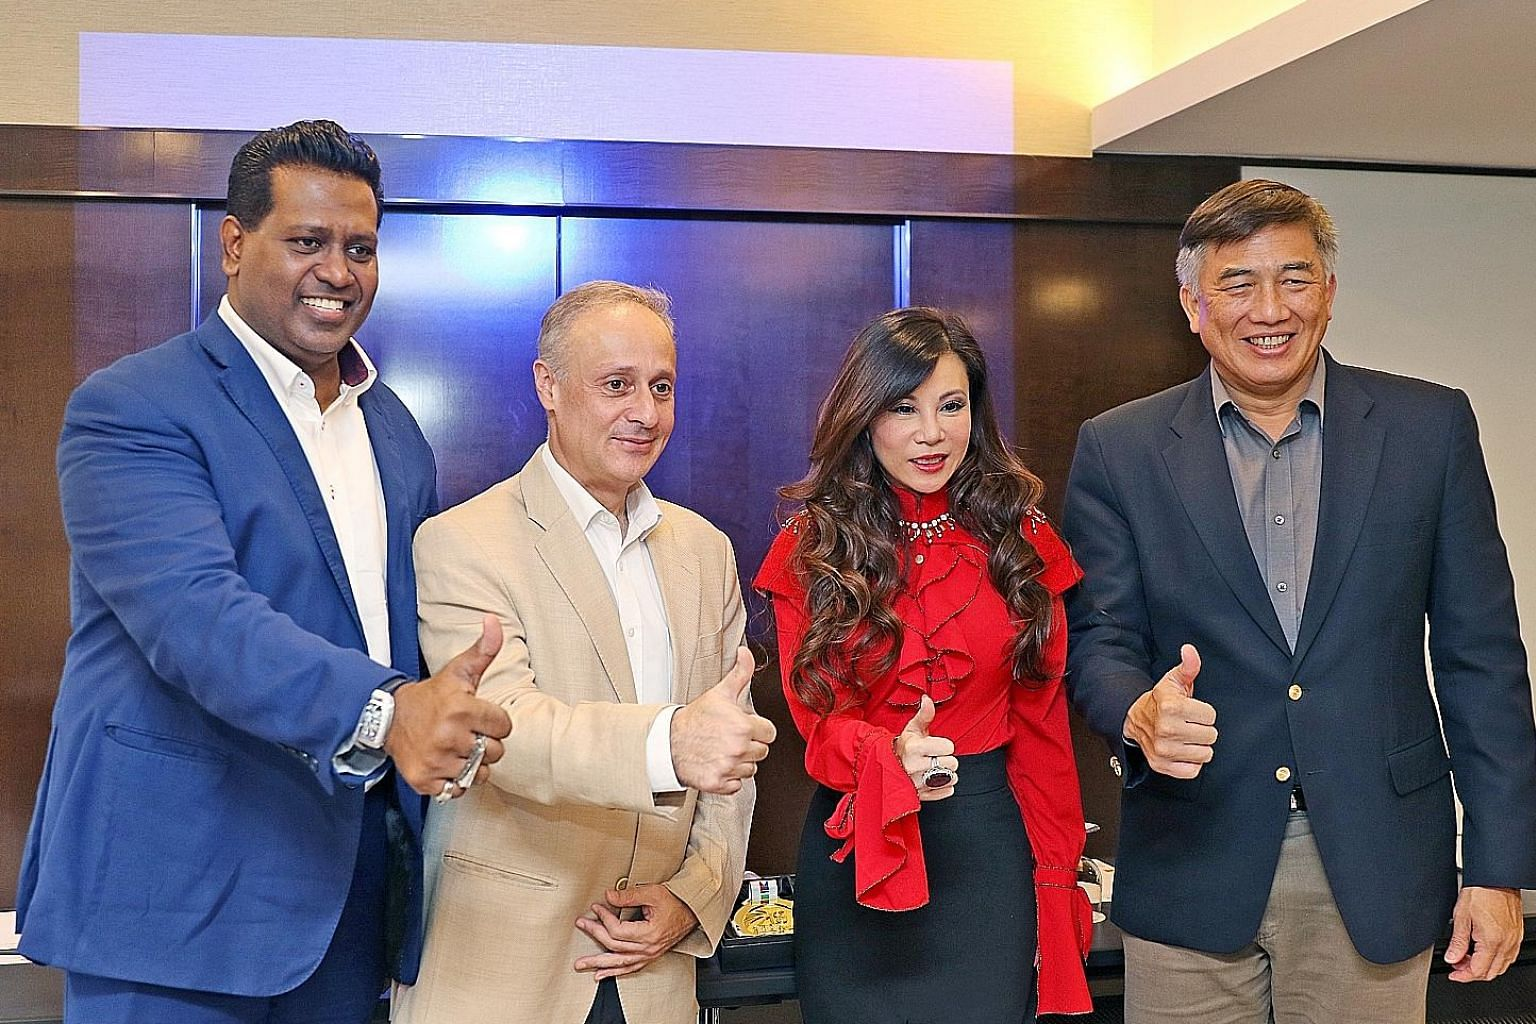 From left: Sheik Alau'ddin, the world championship's organising chairman; Mohit Lalvani, CEO of 1 Play Sports; entrepreneur Grace Kong; and Lim Teck Yin, CEO of Sport Singapore, giving the event the thumbs up.